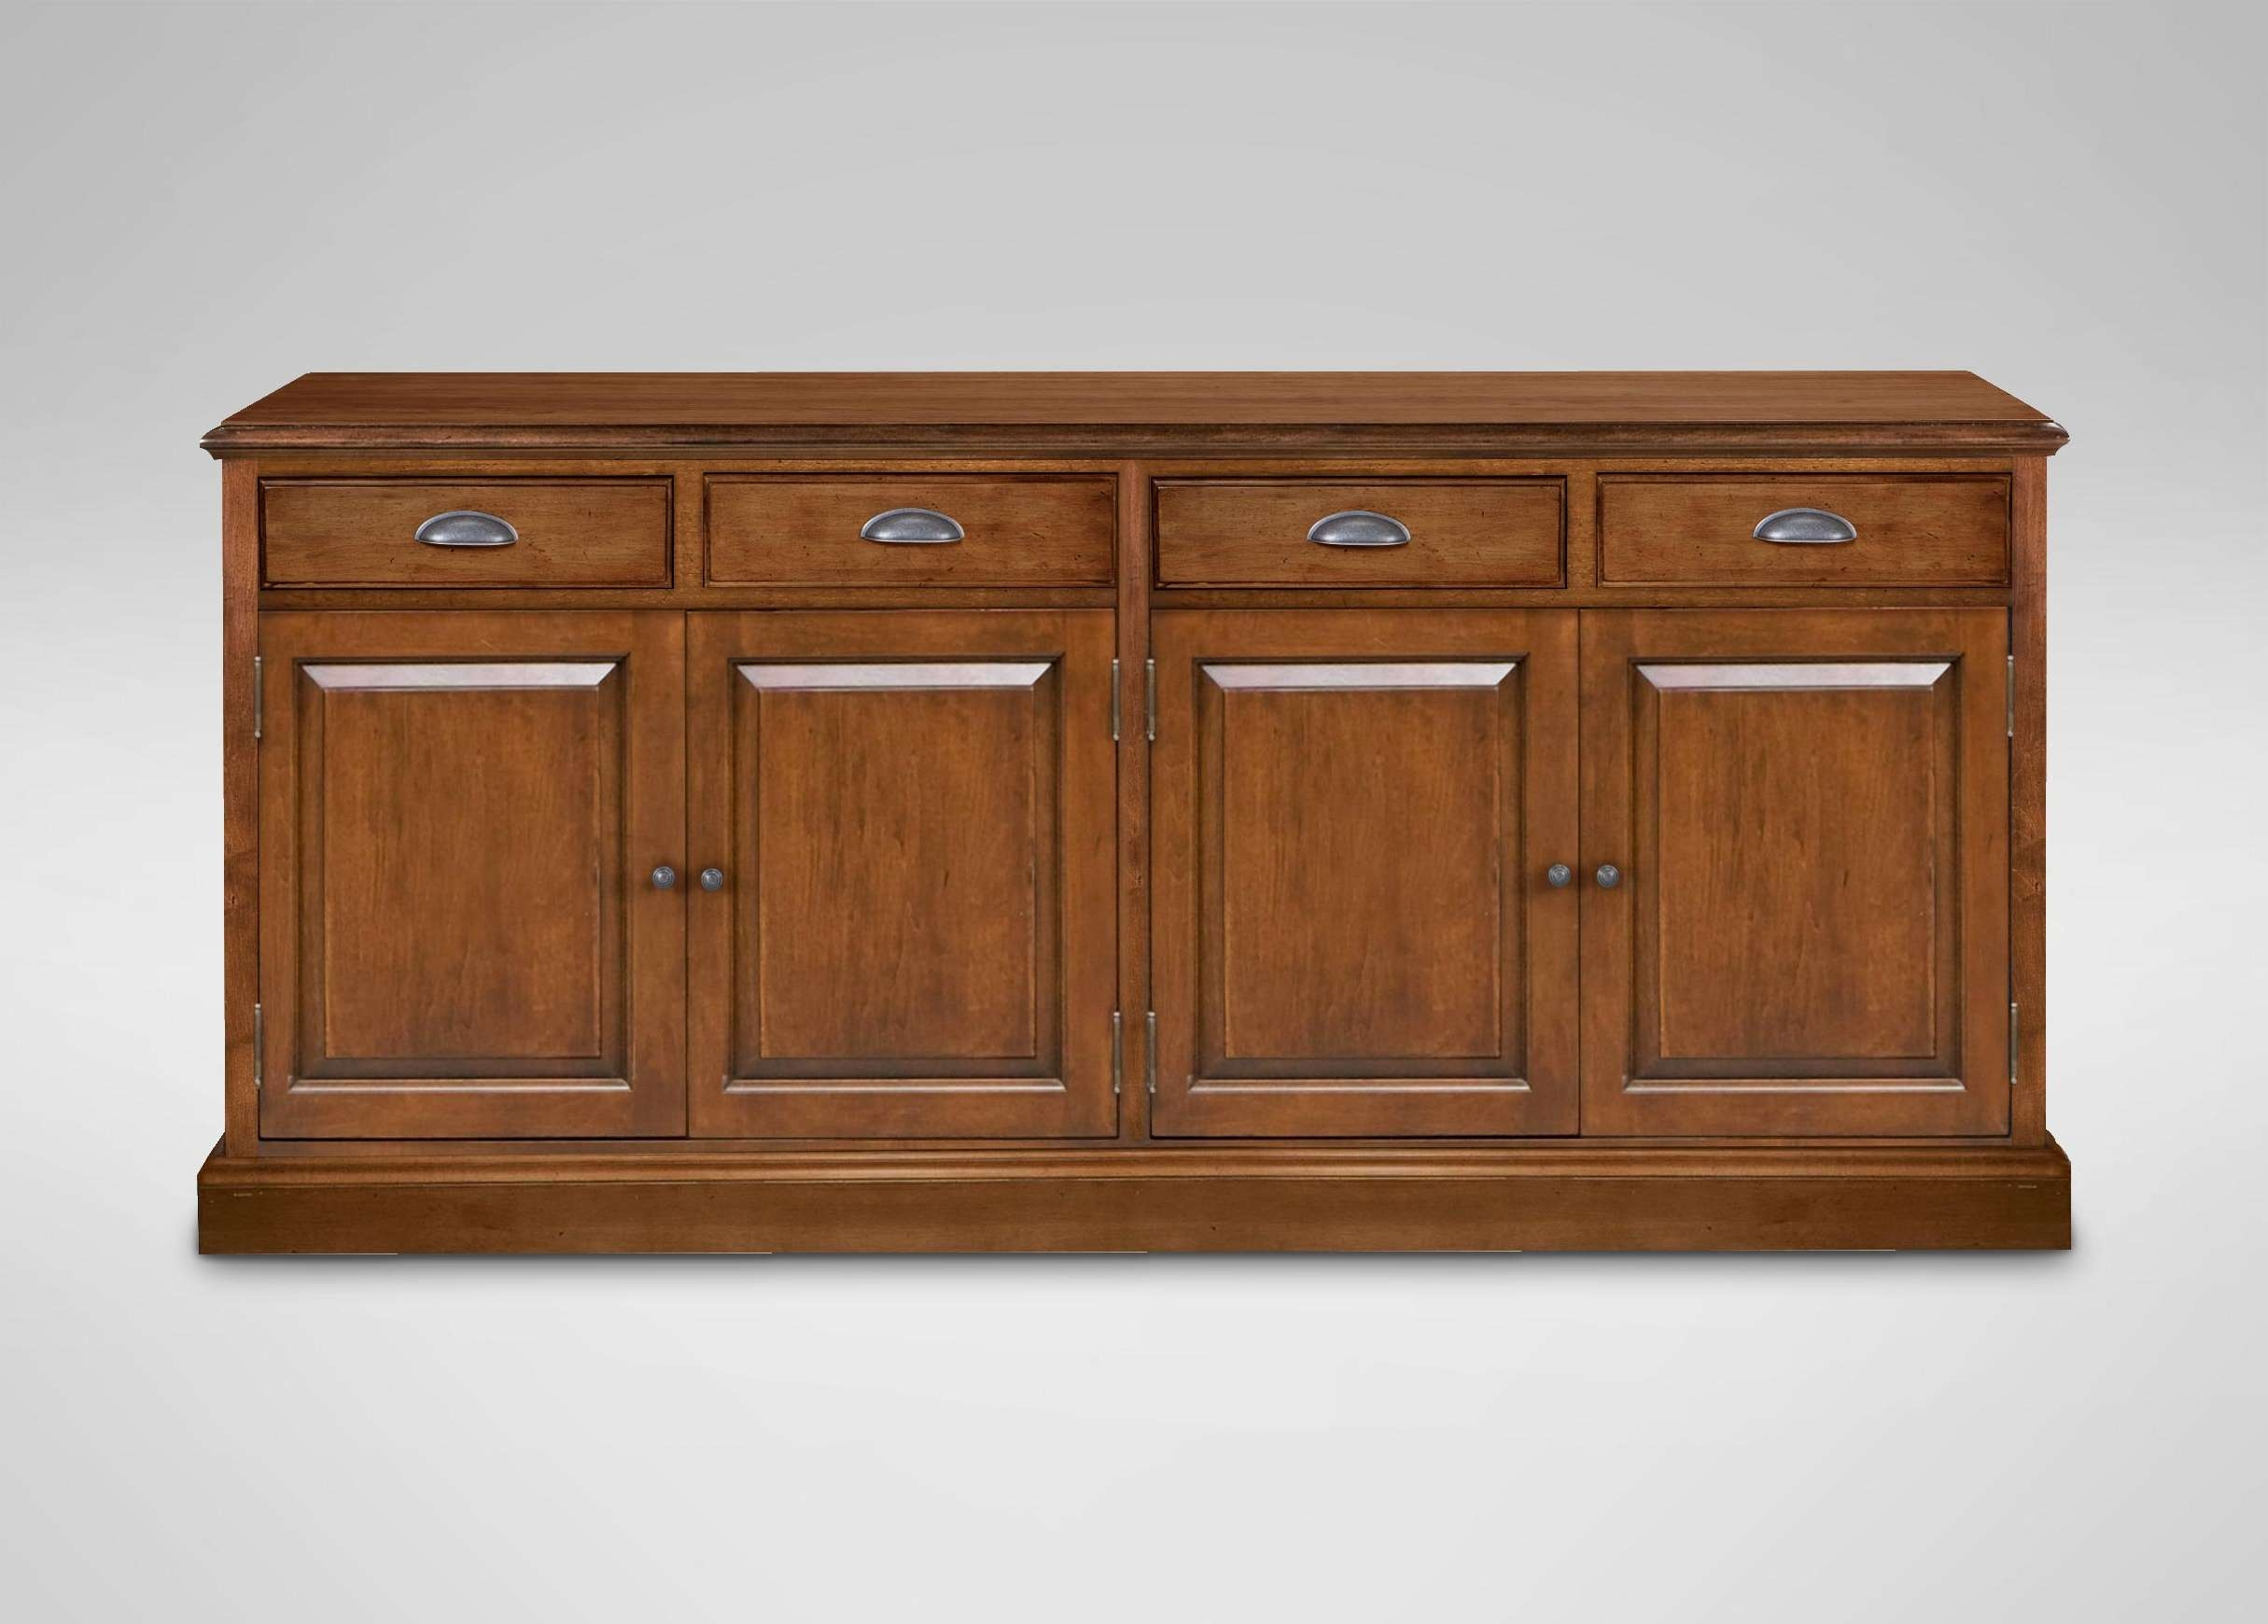 Shop Buffet Storage, Sideboards & Servers | Ethan Allen Inside Buffet Sideboards Servers (View 19 of 20)